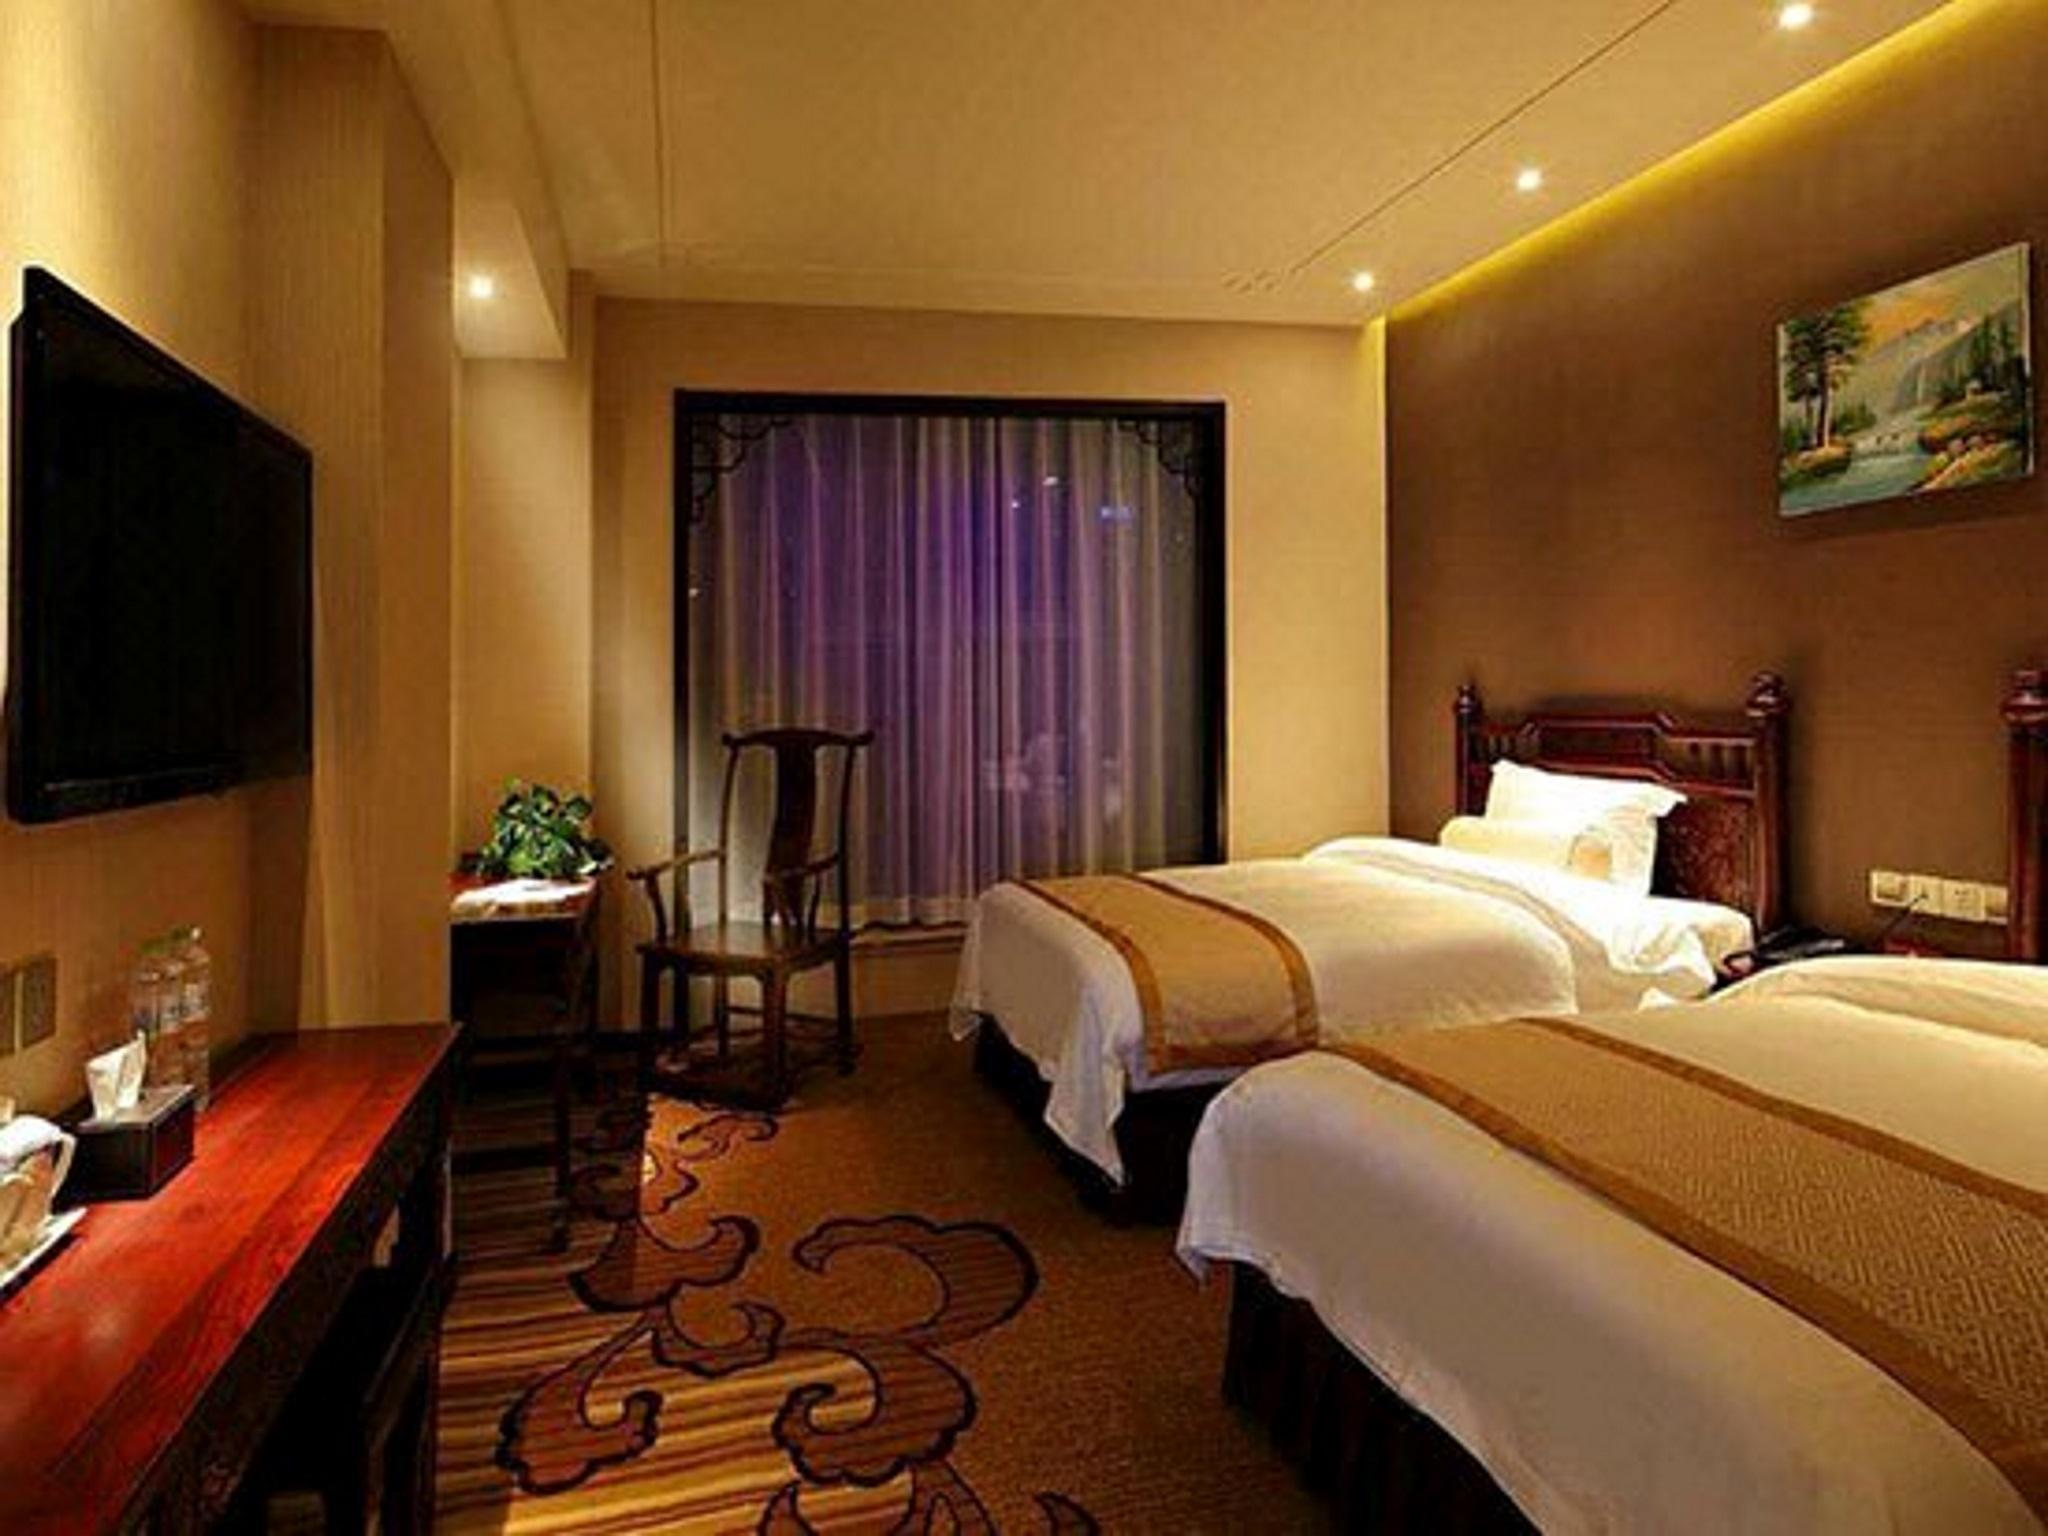 huiteng business hotel beijing china photos room rates promotions rh agoda com